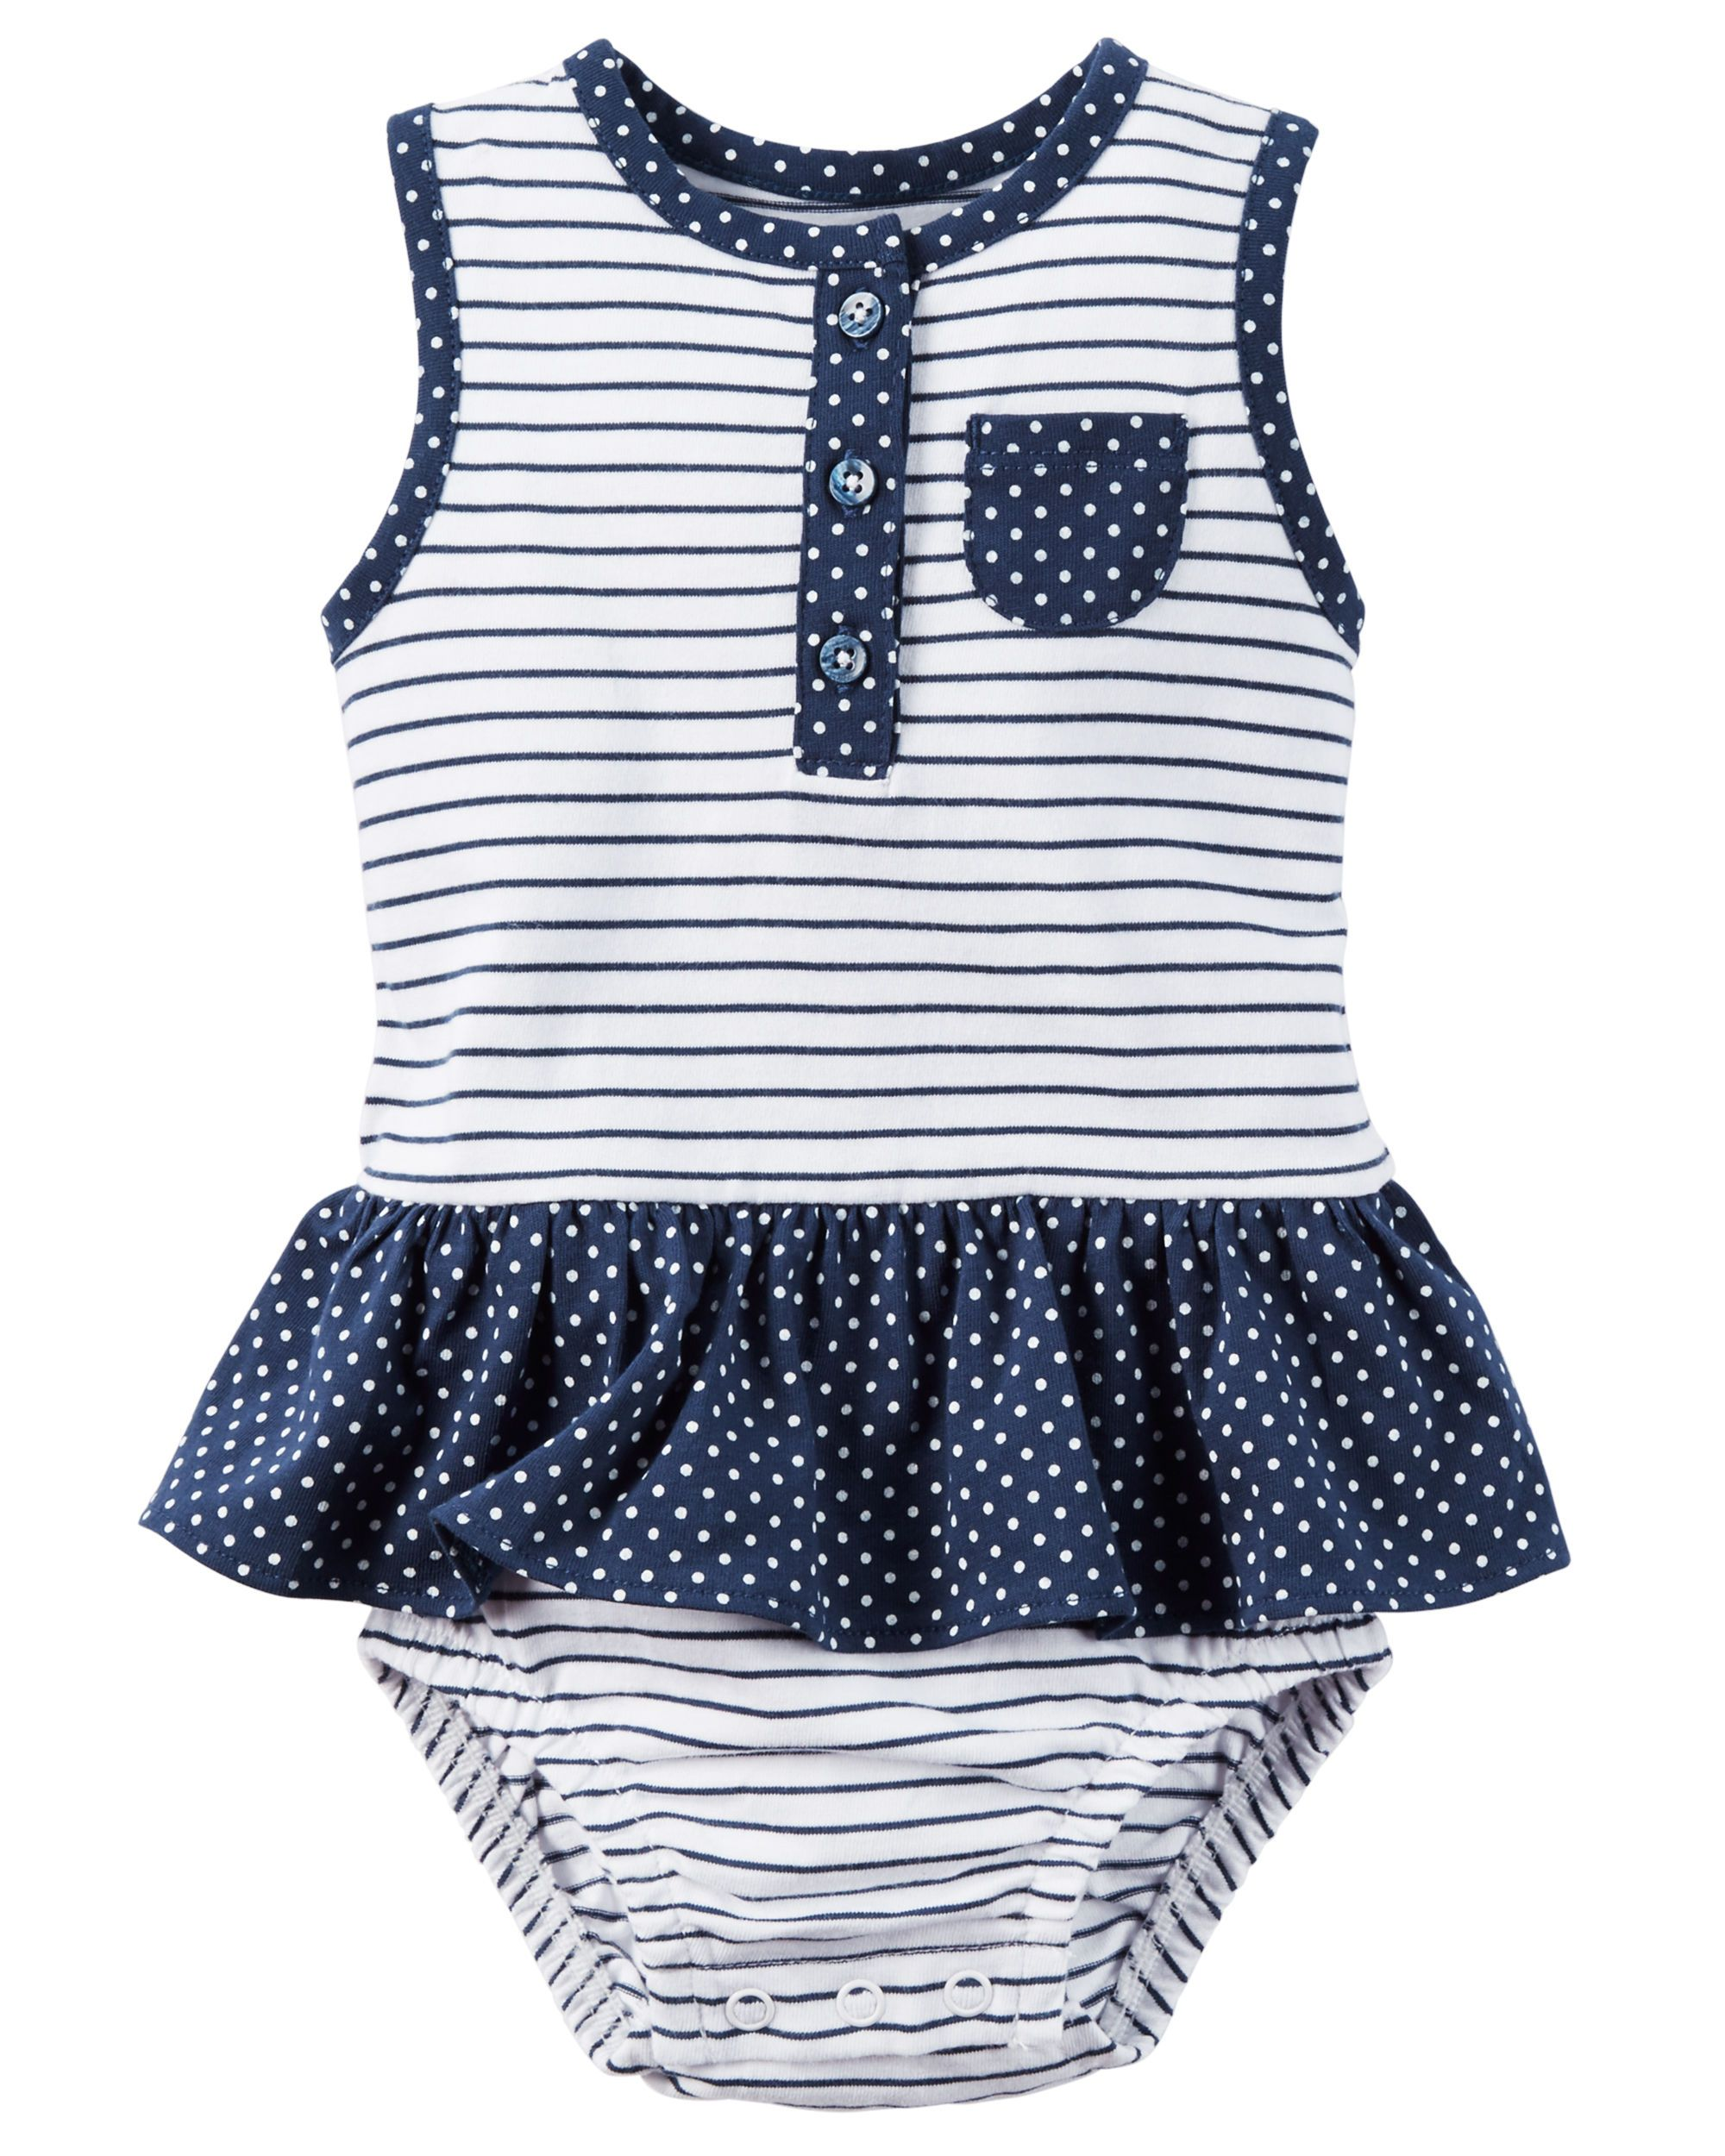 a9ca411fb Cute spring or summer baby girl outfit